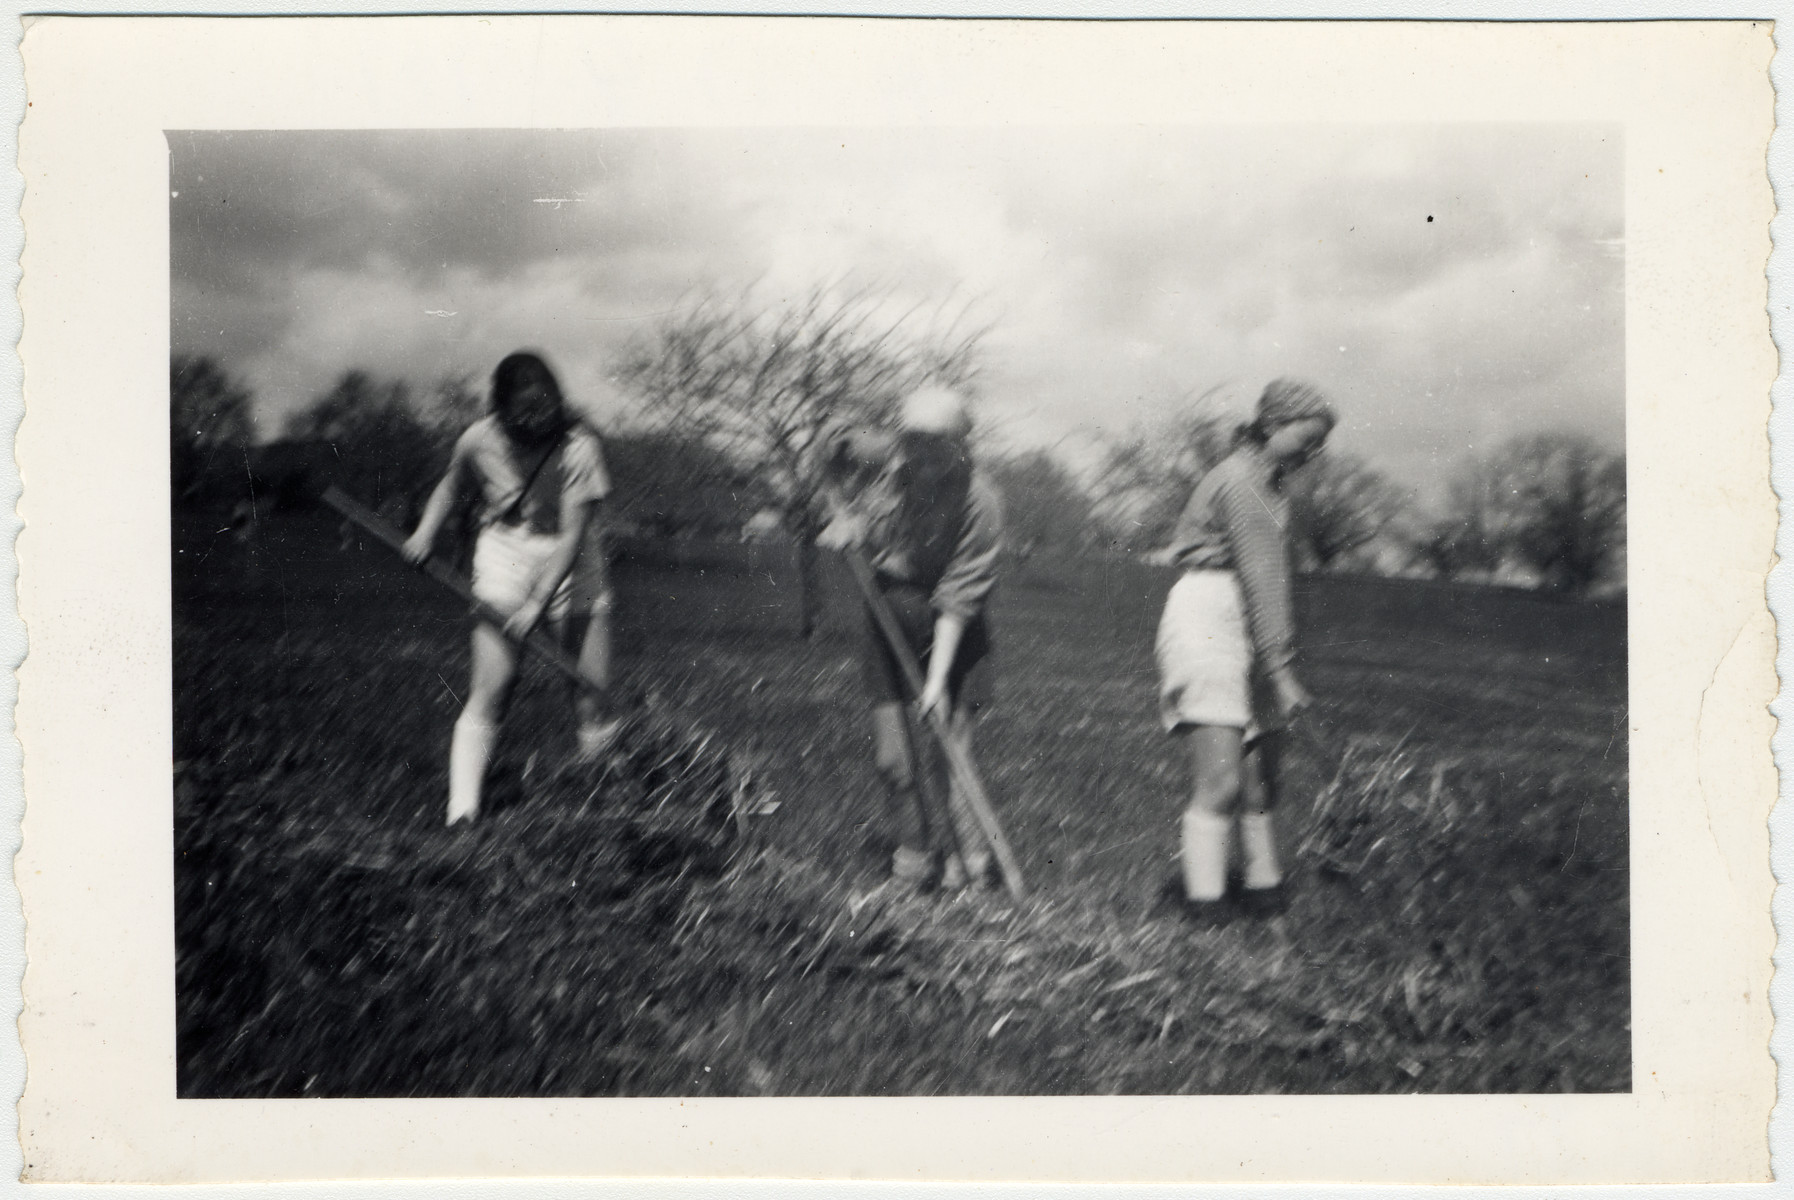 Dory Vulknan, Minni, and Ruth Rappaport, members of a Zionist youth movement, work in farm fields in Elgg, Switzerland.